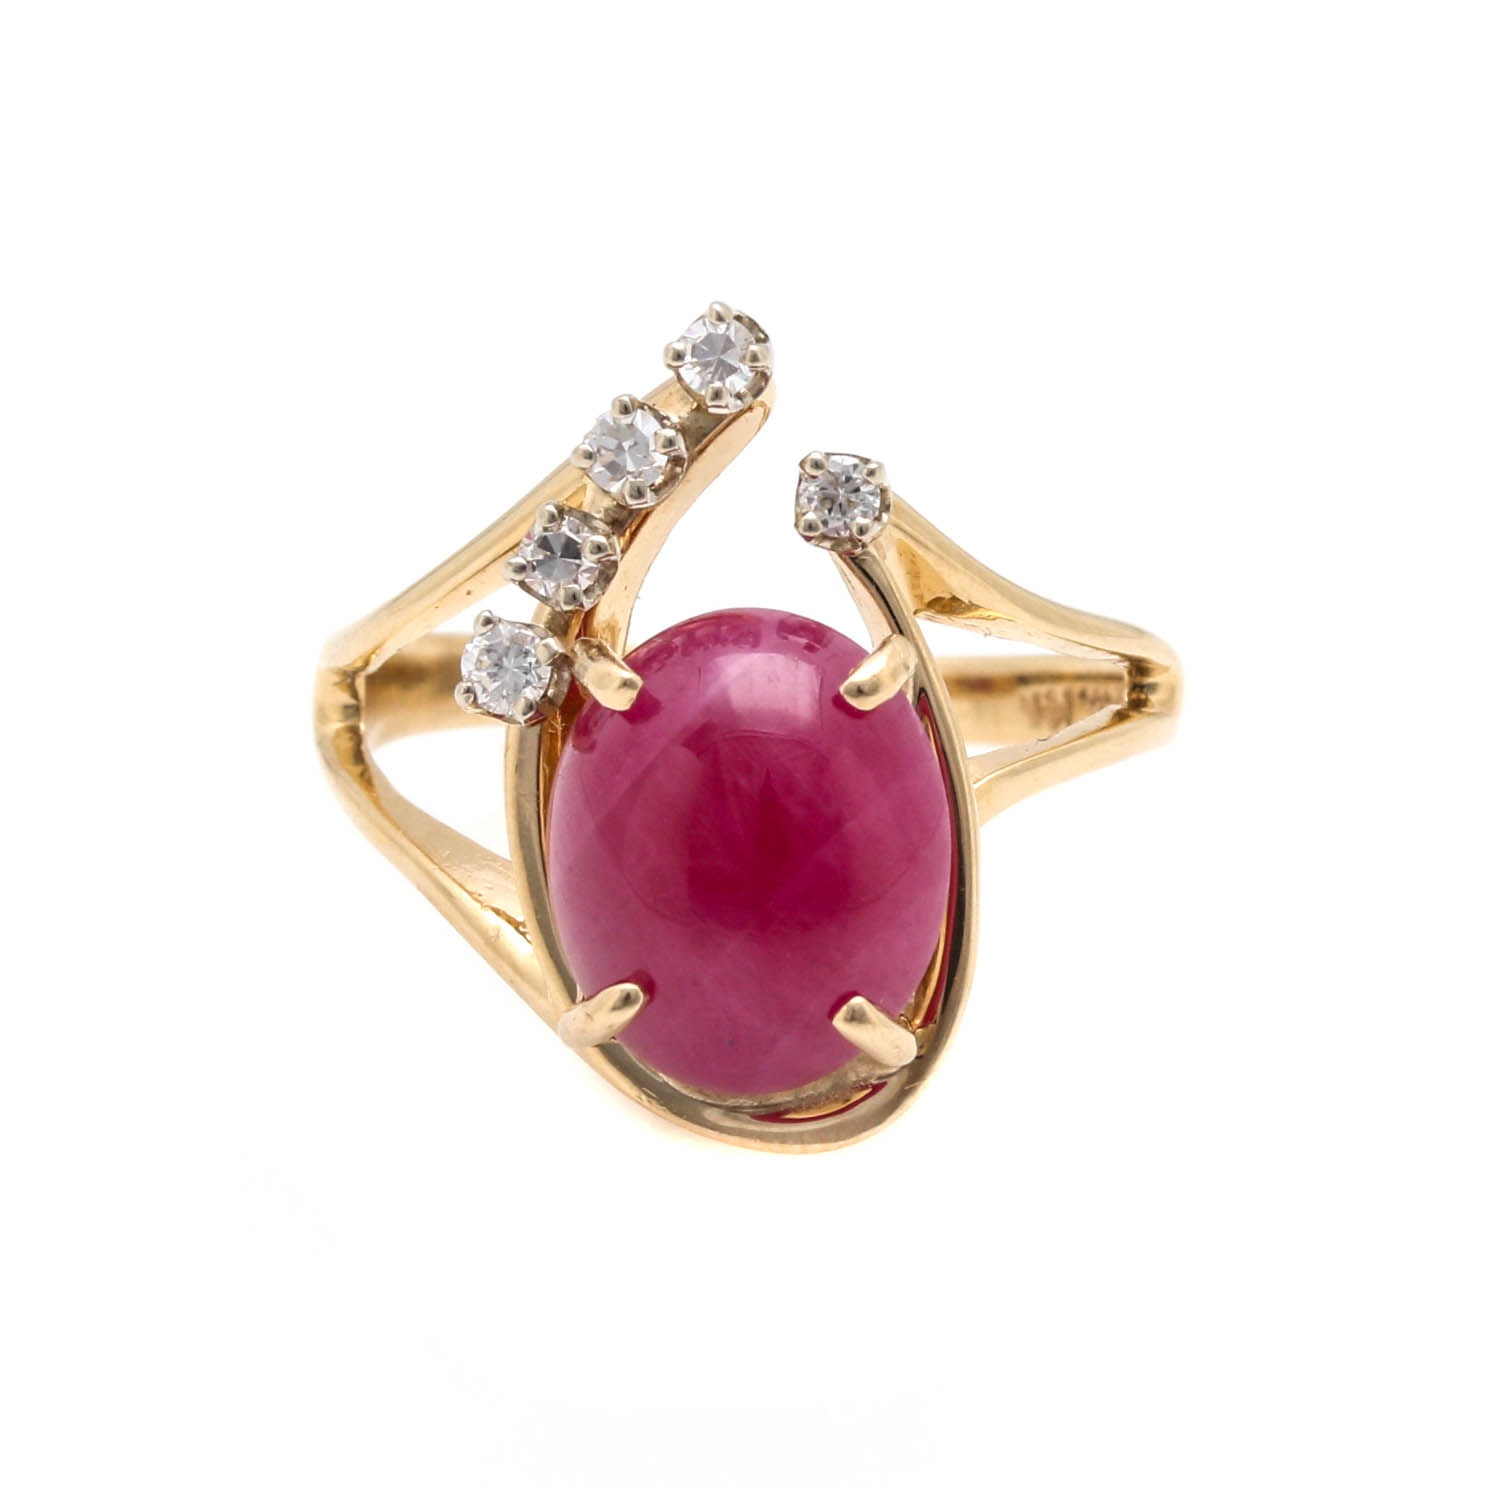 14K Yellow Gold 3.90 CT Ruby and Diamond Ring